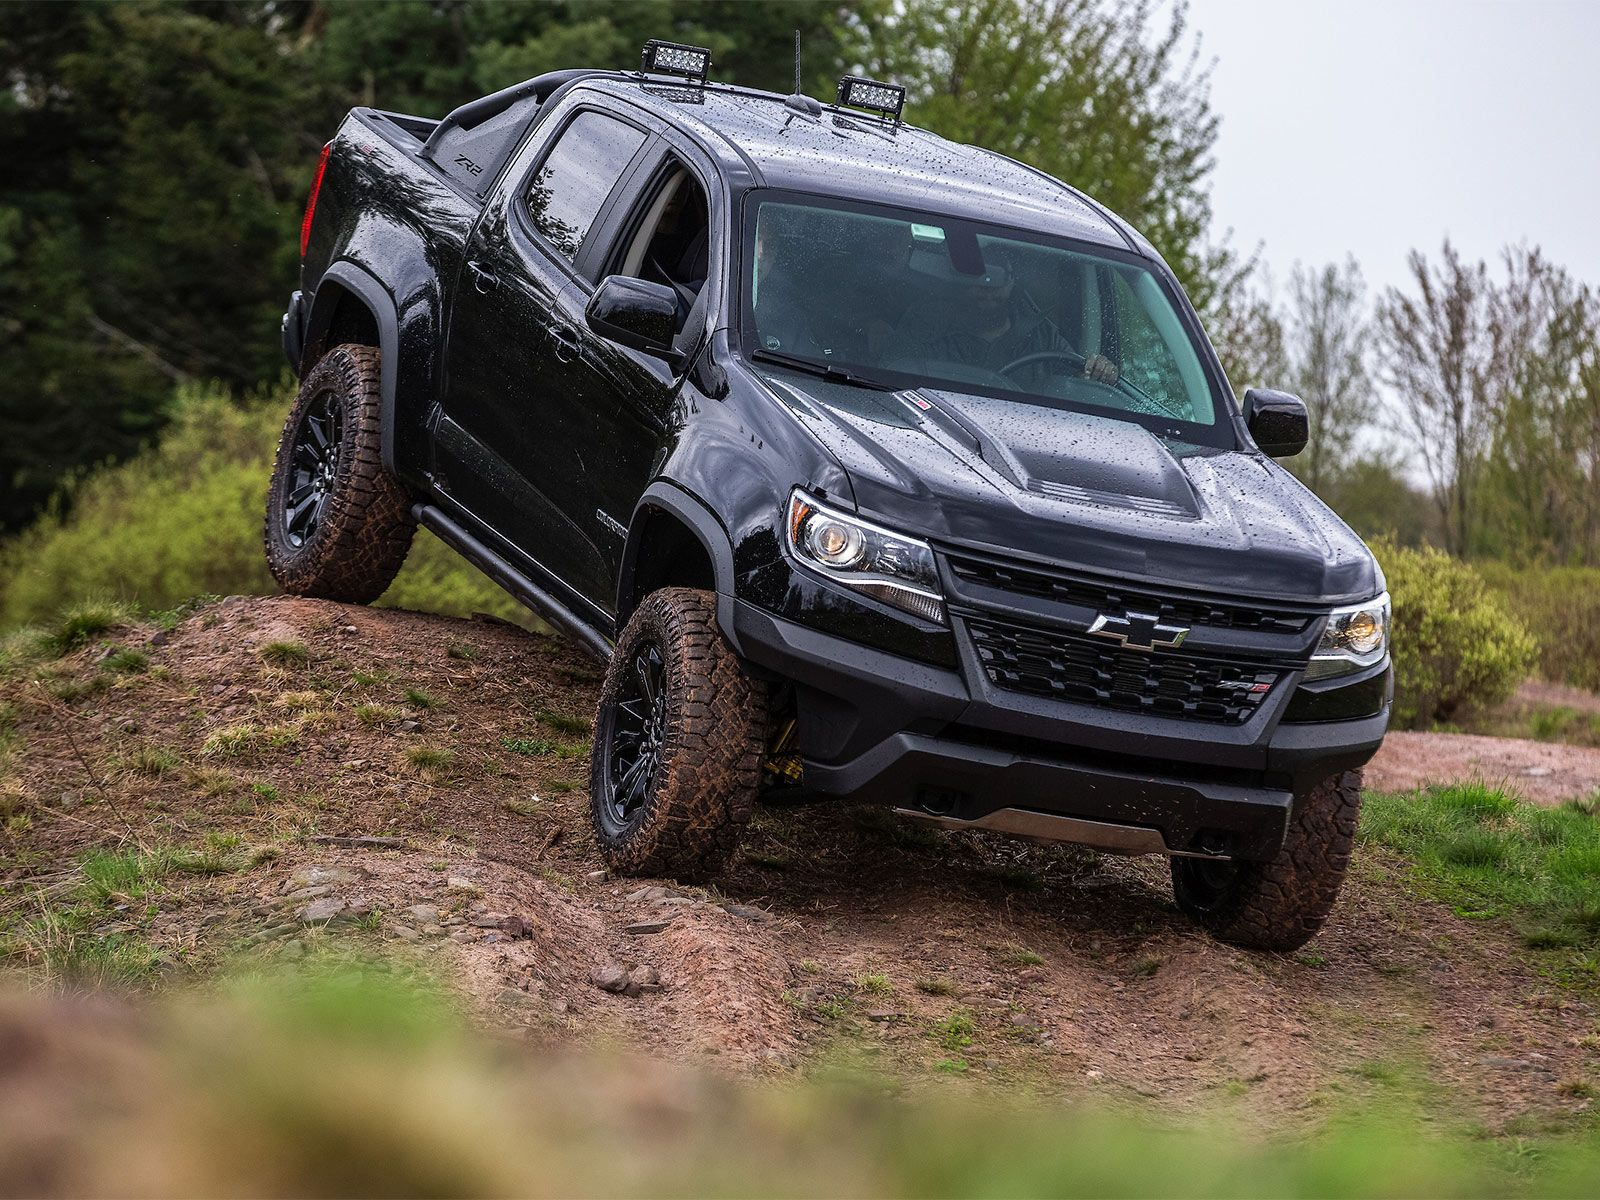 Image Result For 2019 Chevy Colorado Zr2 Midnight Light Bar Chevy Colorado Chevy Colorado Z71 Chevy